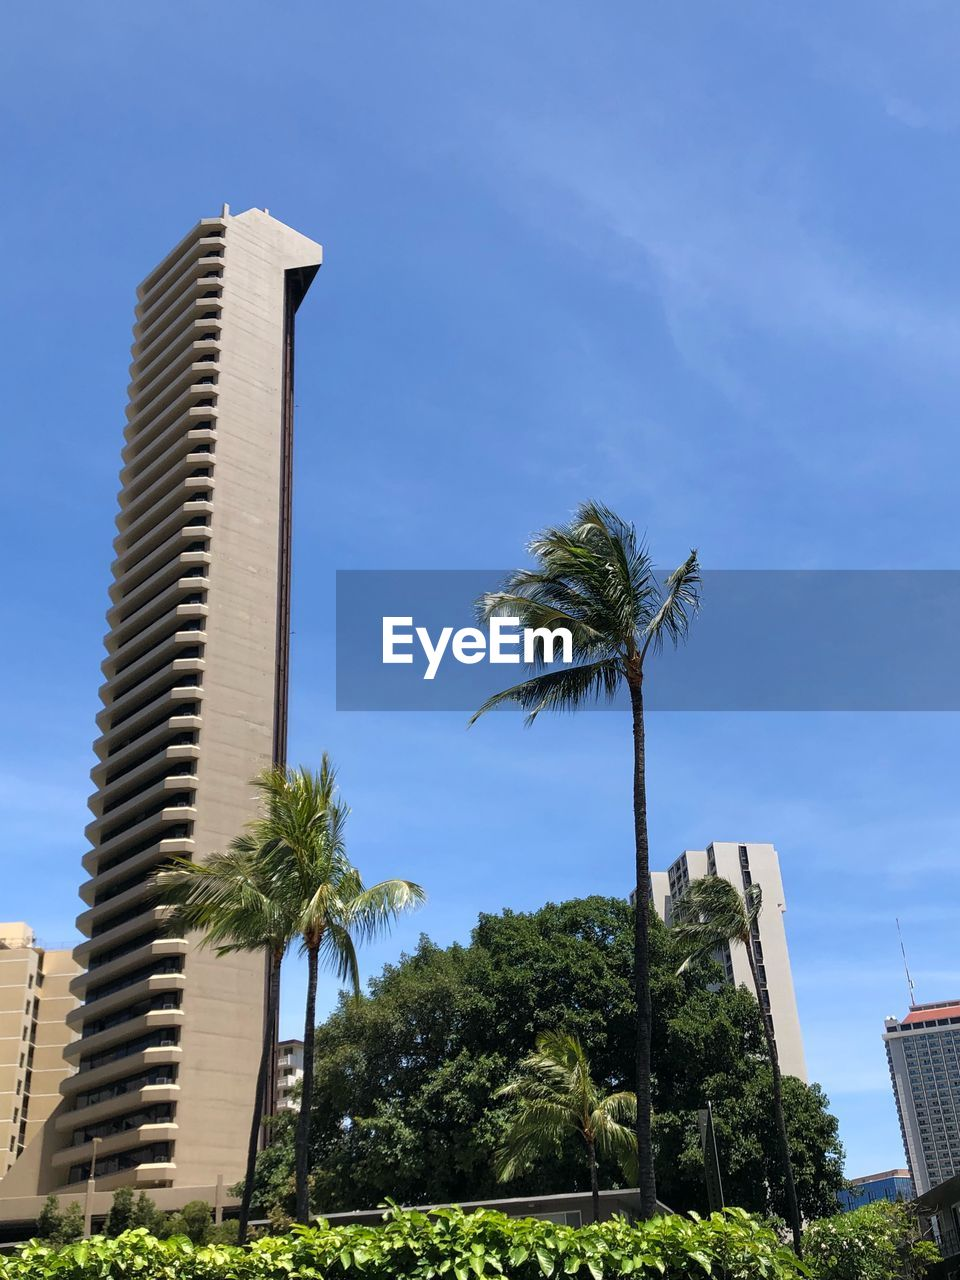 tree, plant, tropical climate, palm tree, architecture, sky, built structure, building exterior, nature, low angle view, growth, building, tall - high, no people, day, city, sunlight, outdoors, office building exterior, tower, coconut palm tree, skyscraper, tropical tree, palm leaf